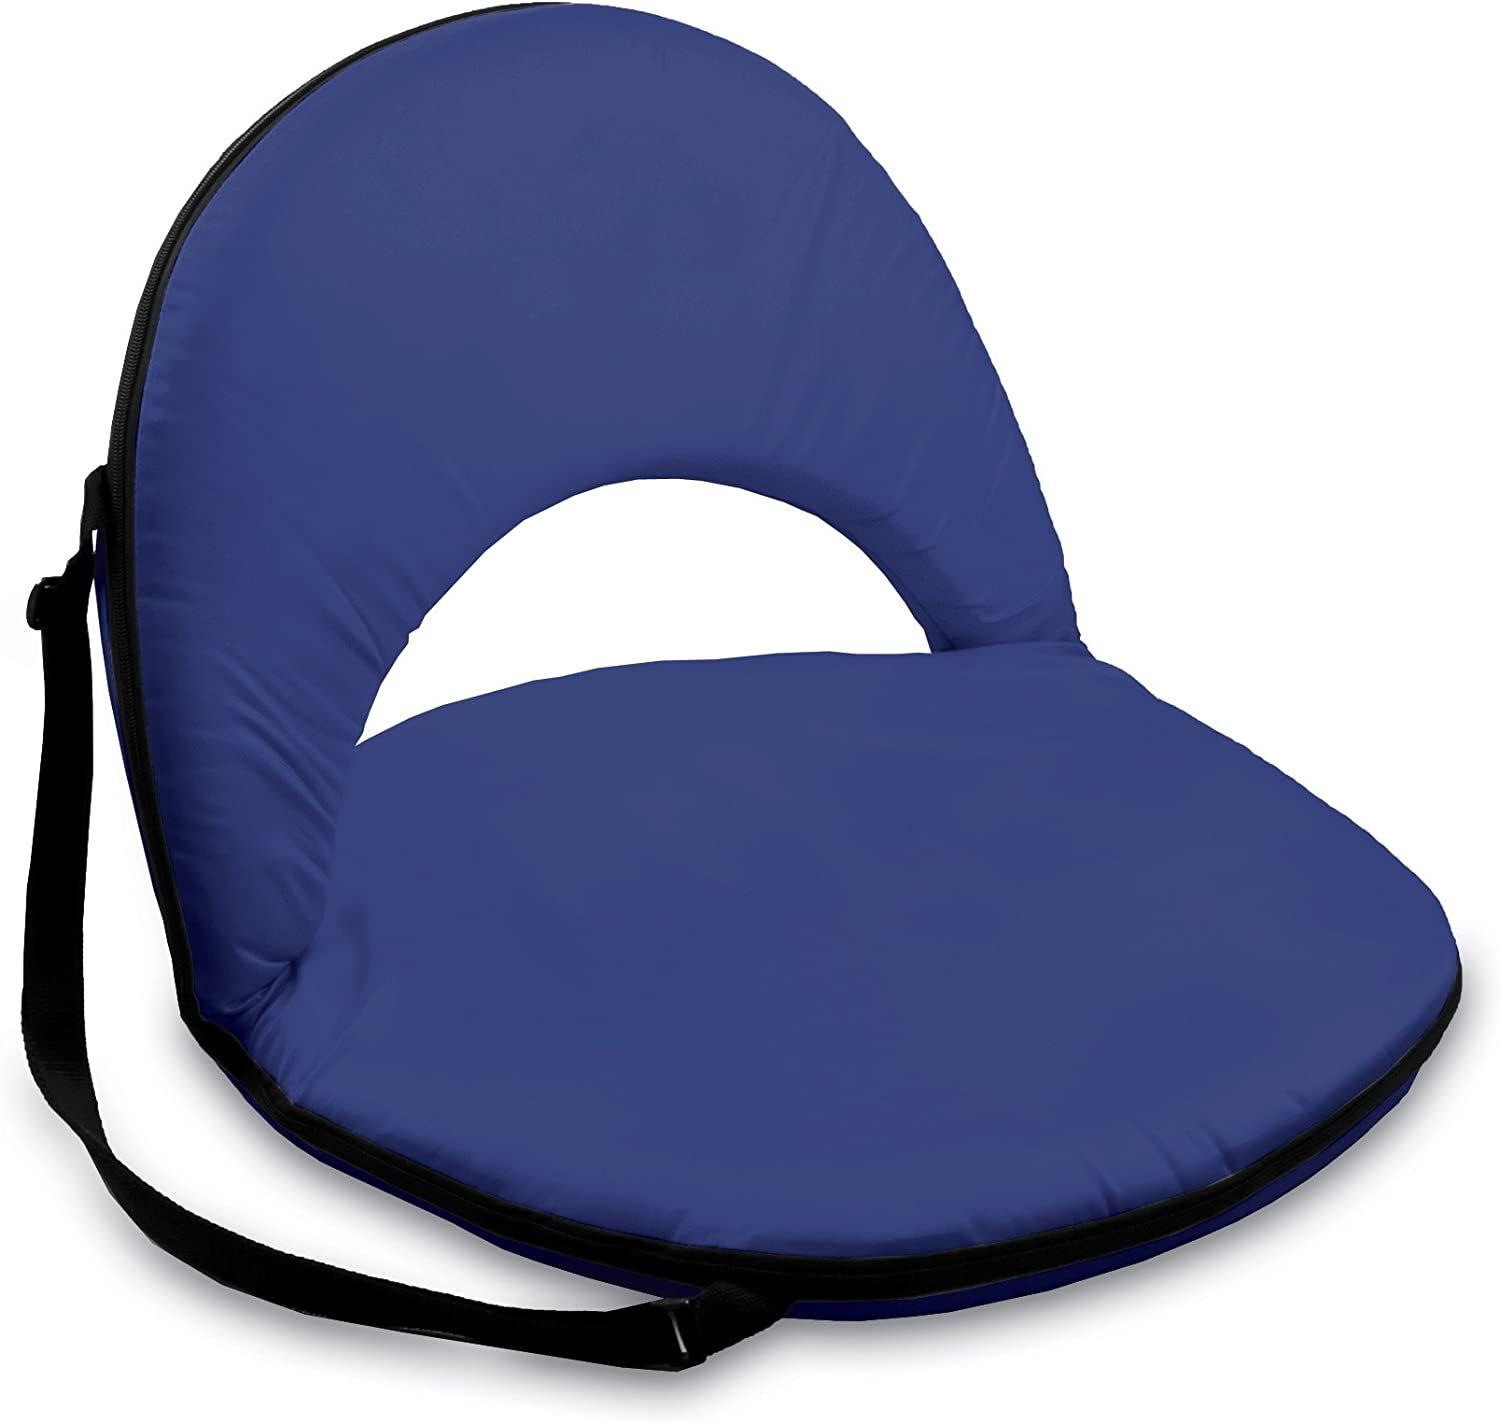 ONIVA - a Picnic Time Brand Oniva Portable Reclining Seat, Navy